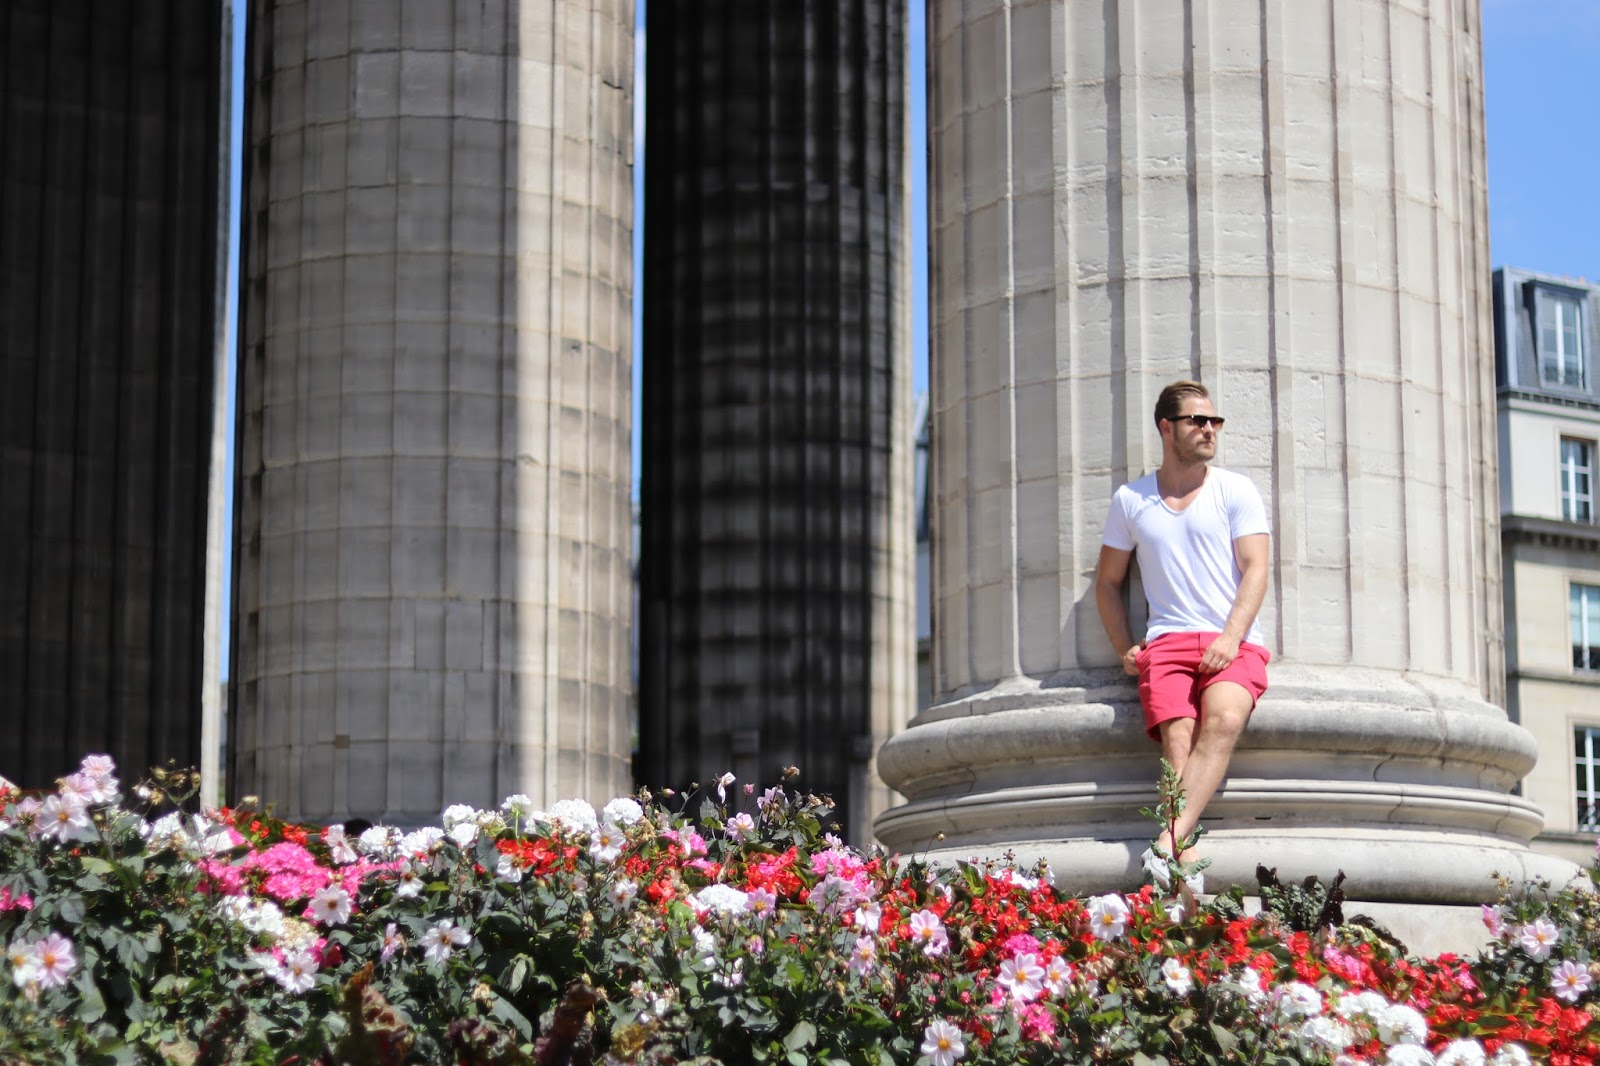 Ben Heath, Twenty First Century Gent leaning against pillars in Paris, France